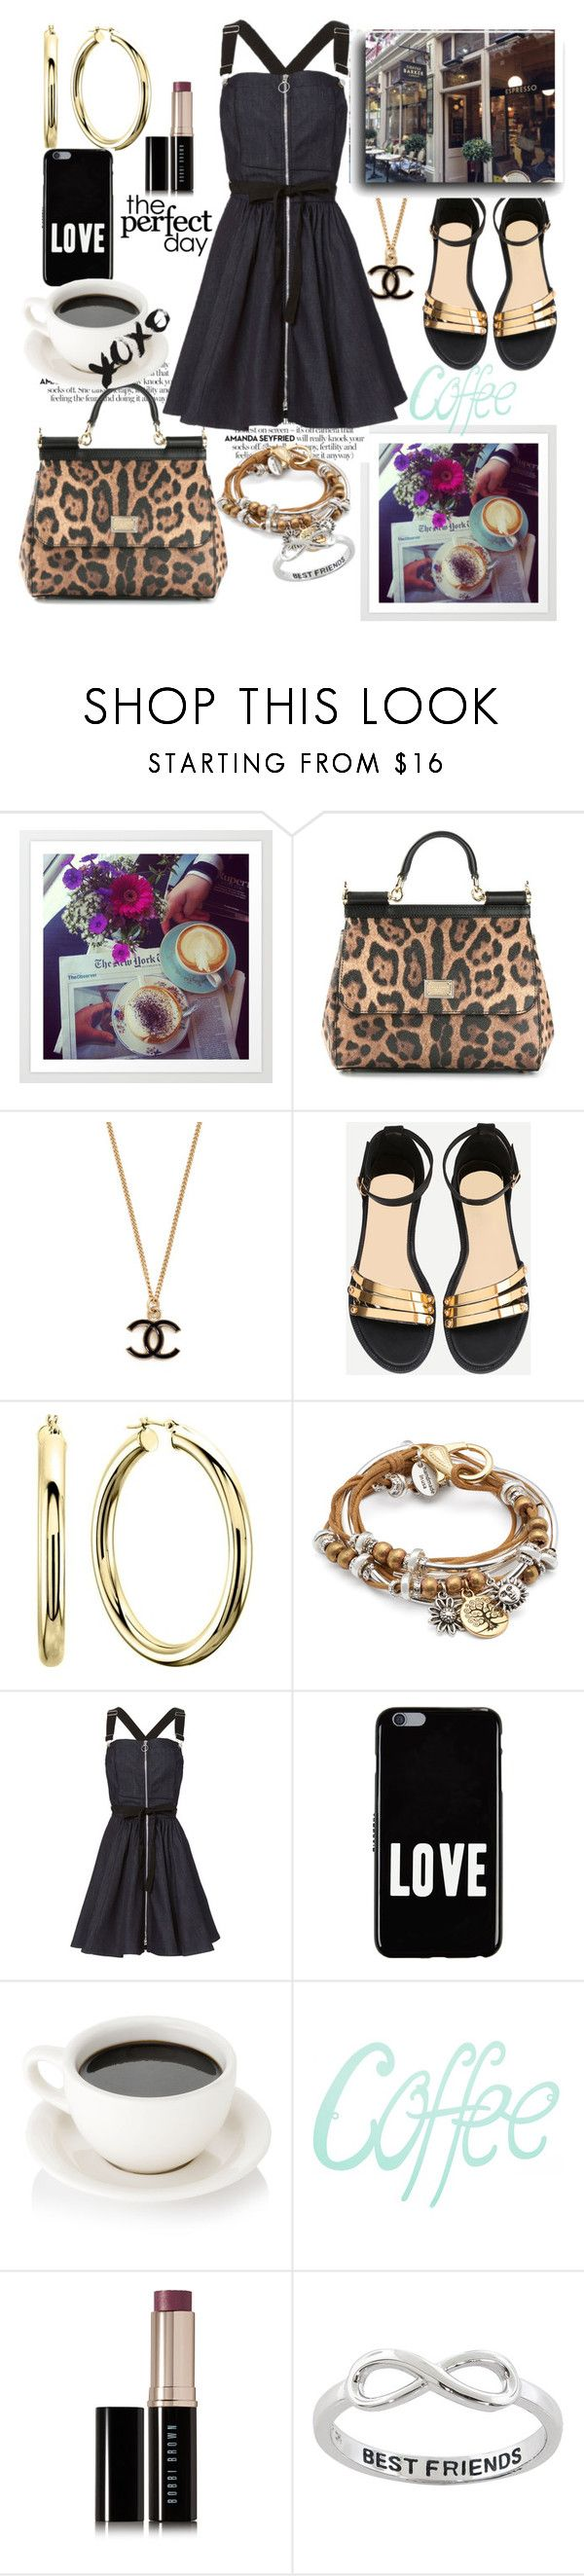 """Quick style...lil black dress"" by csfshawn ❤ liked on Polyvore featuring Dolce&Gabbana, Lizzy James, Adam Selman, Givenchy, Bobbi Brown Cosmetics, Eternally Haute and Barker"